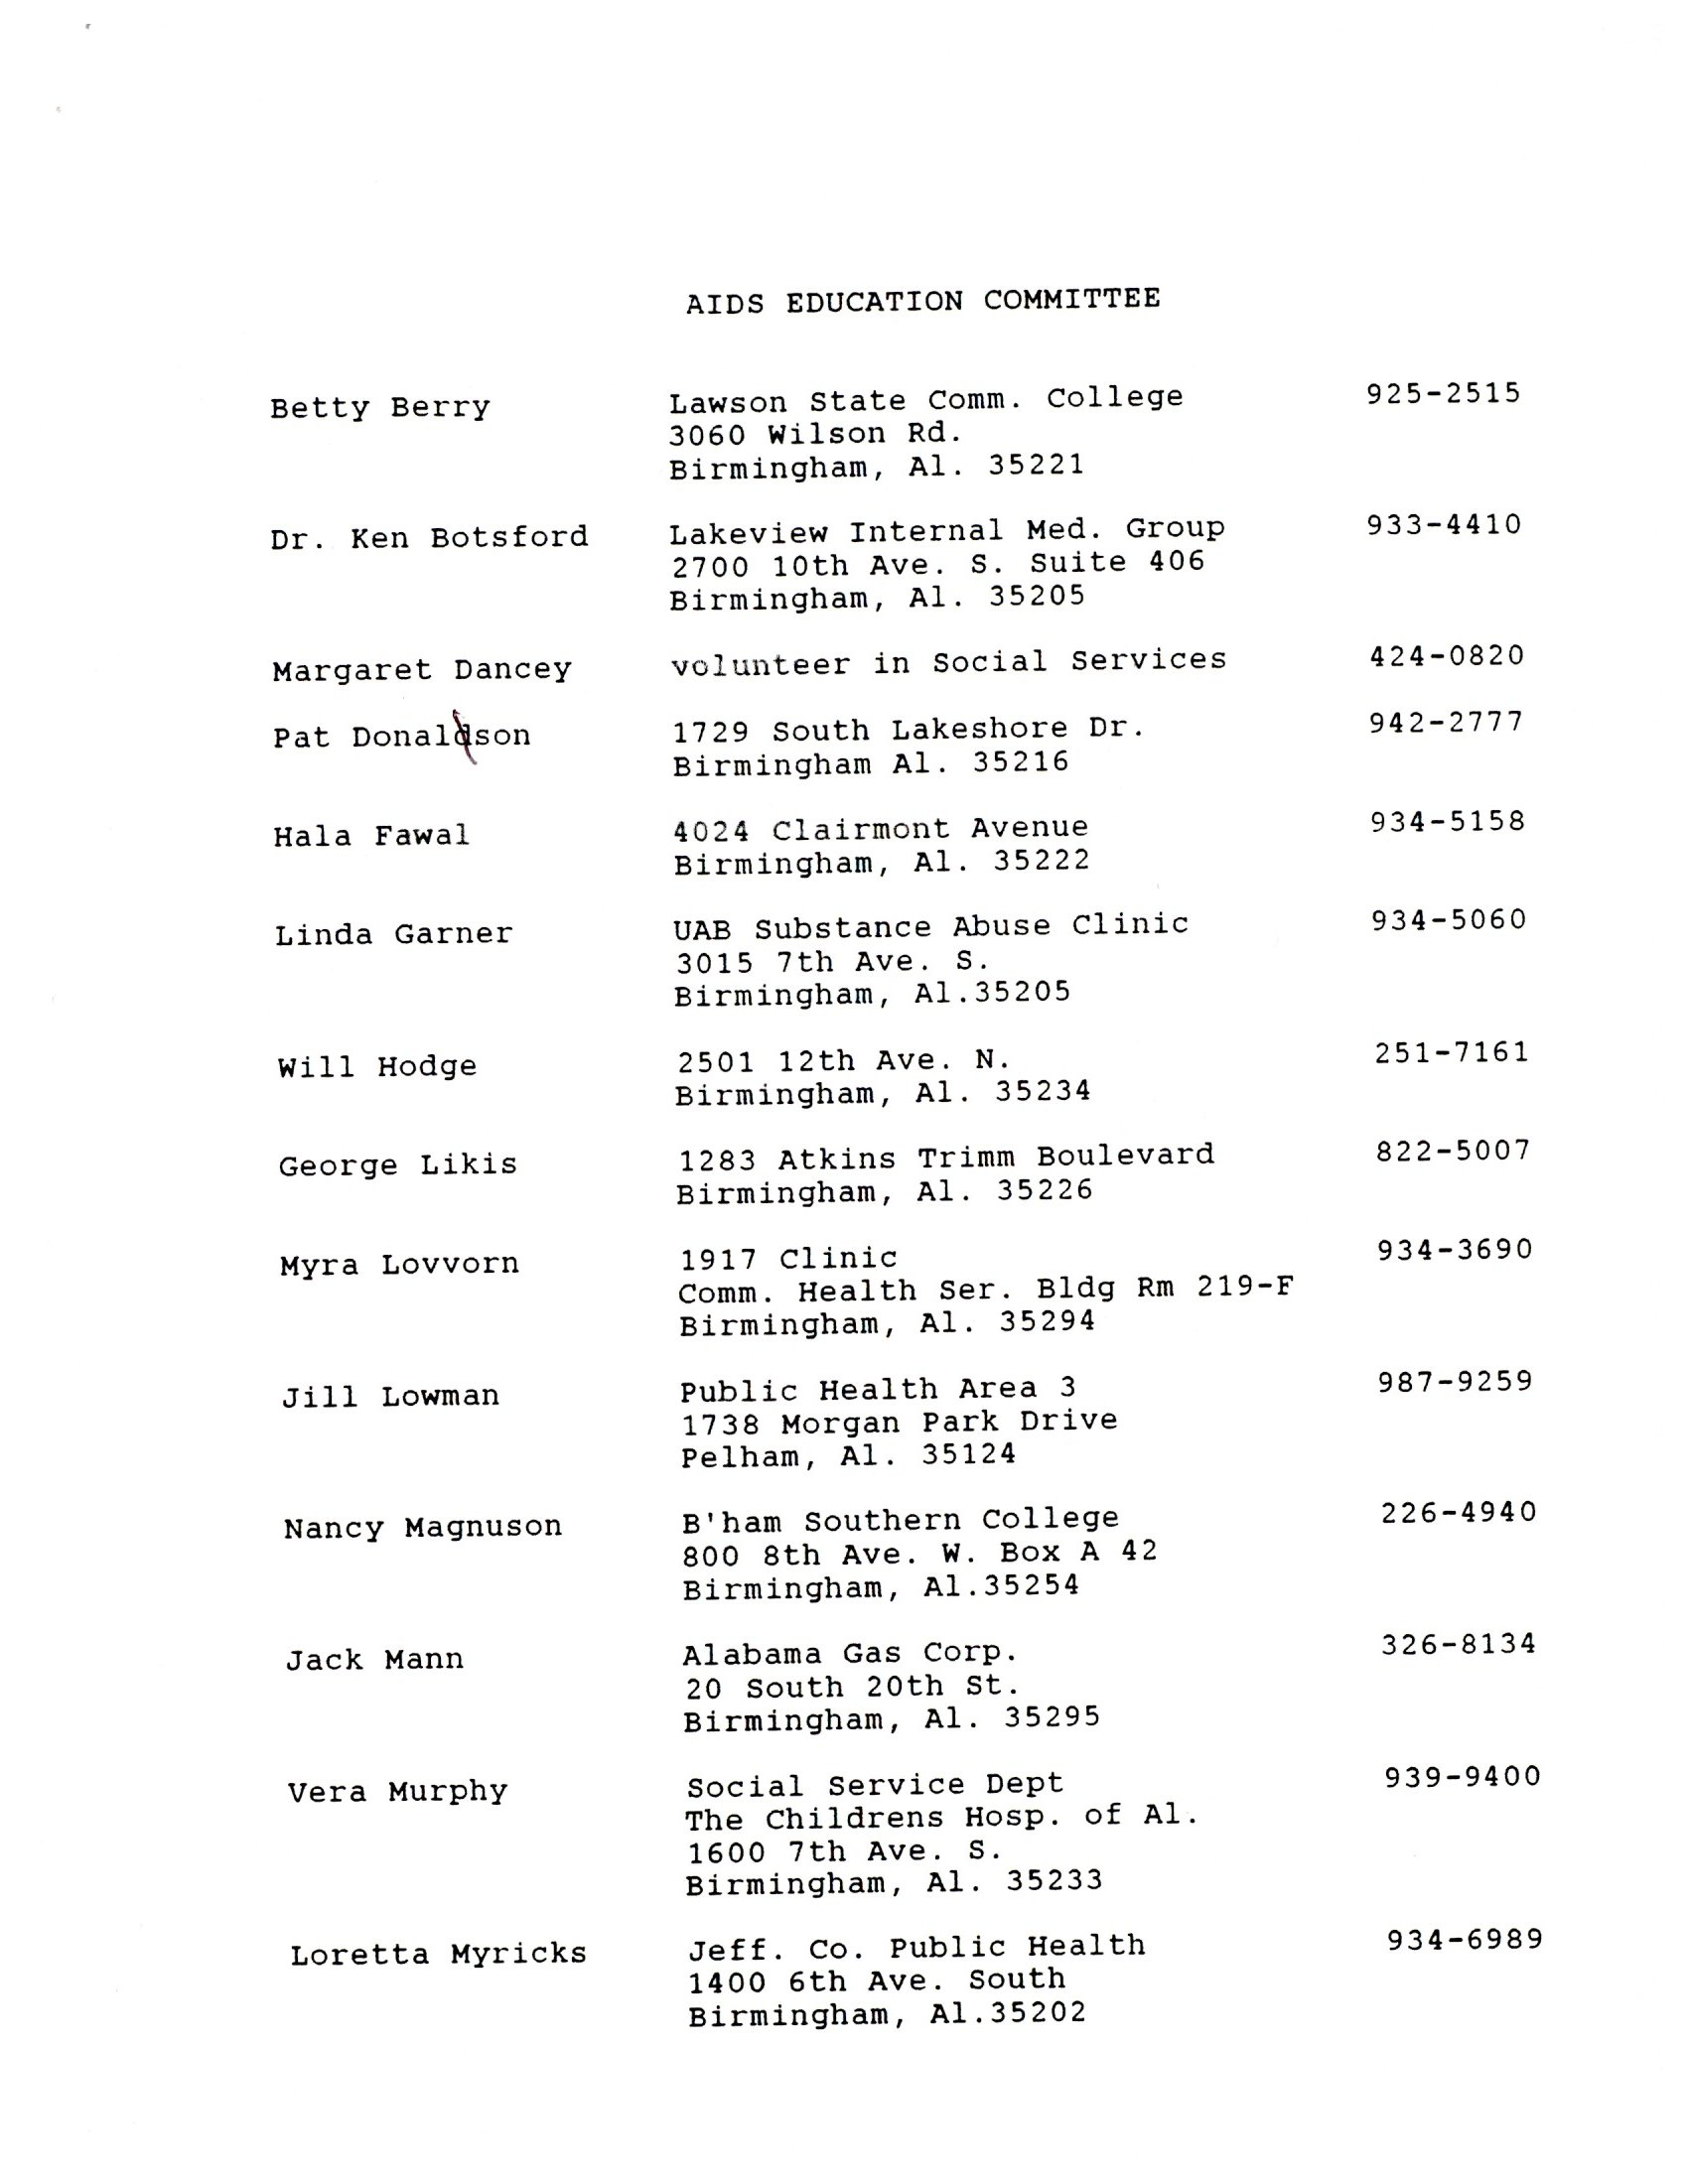 AIDS-Committee-Sept10-1991-2